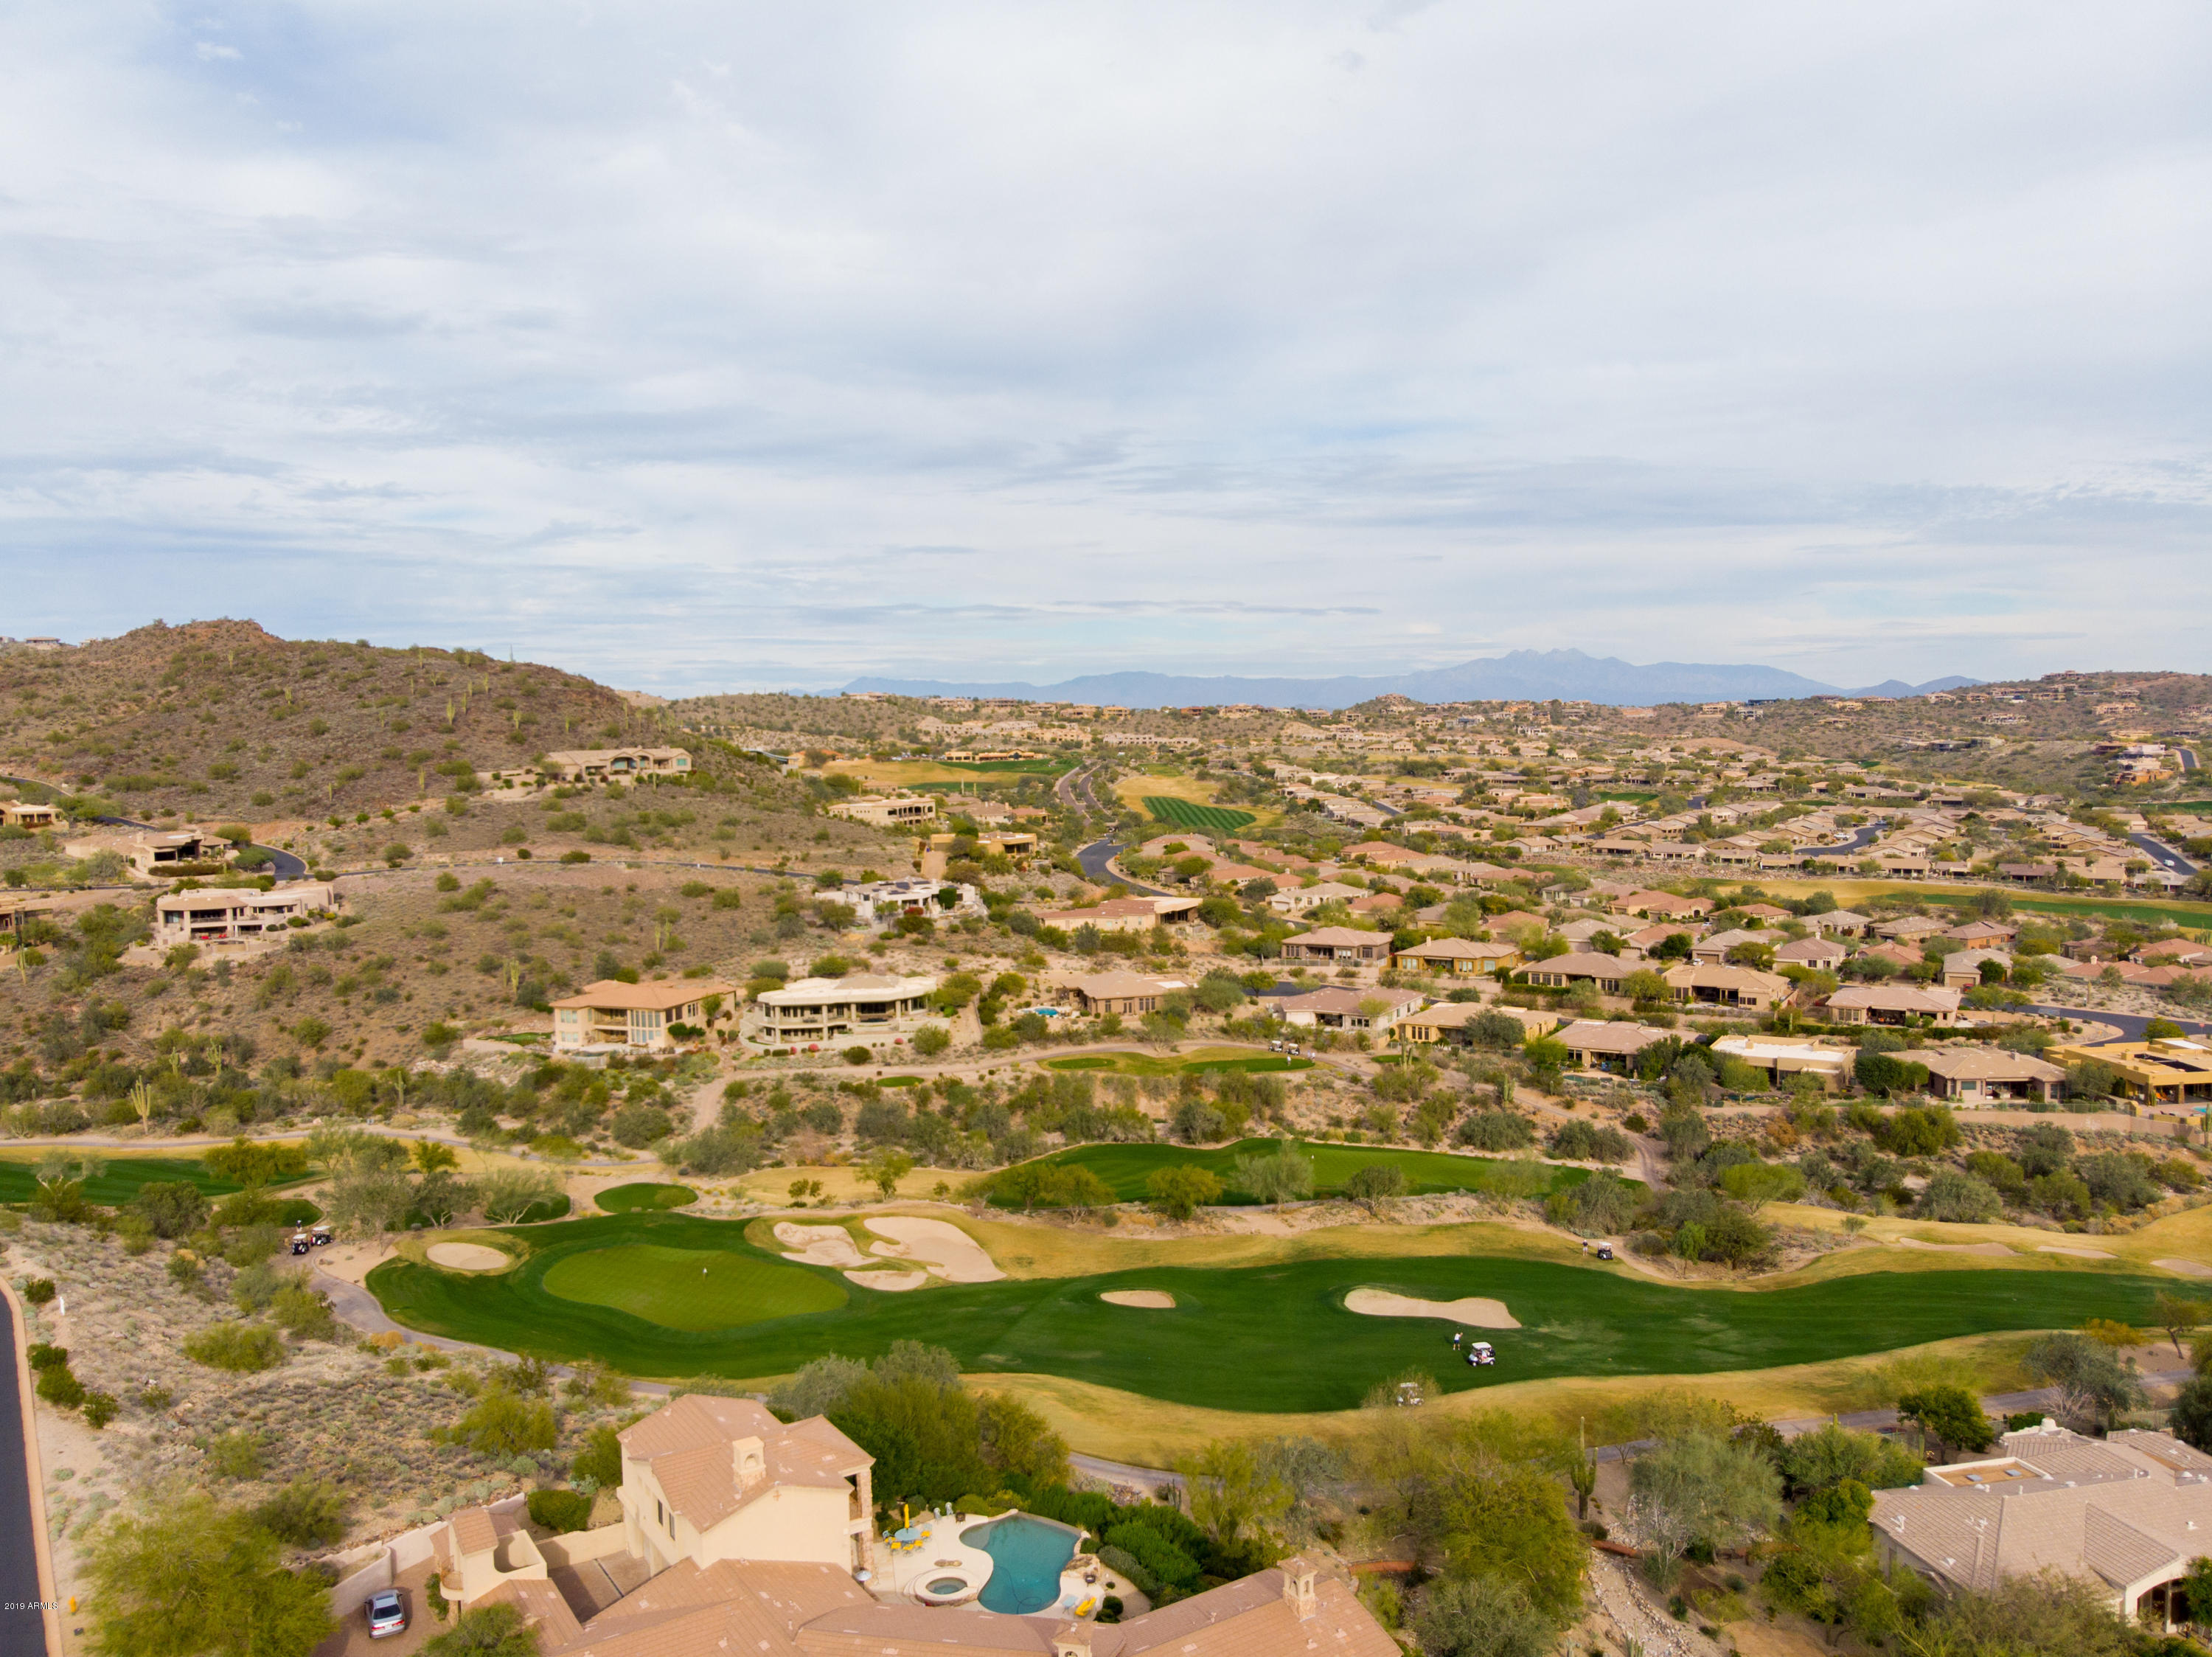 MLS 5879304 9220 N FLYING BUTTE --, Fountain Hills, AZ 85268 Fountain Hills AZ Eagle Mountain